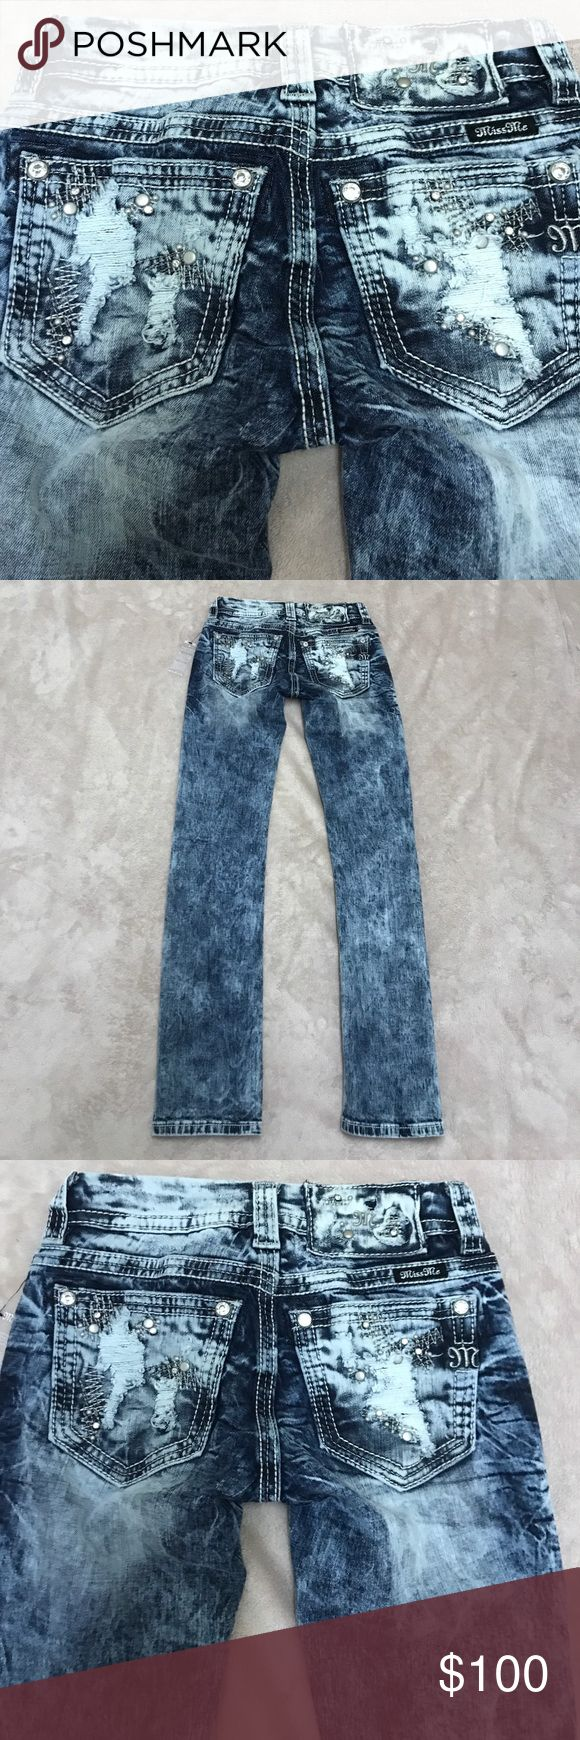 NWT Miss Me Rhinestone Signature Straight Jeans New With Tag. Style# JE8458TA. Color VTG 58. Miss Me Signature Straight Jeans. 98% cotton 2% elastane. Size 23. Waist laying flat 13'. Rise 6'. Inseam 31'. I do bundles also give me your best offer please check some of my items you might find what you are looking for in good quality and very affordable price Miss Me Jeans Straight Leg